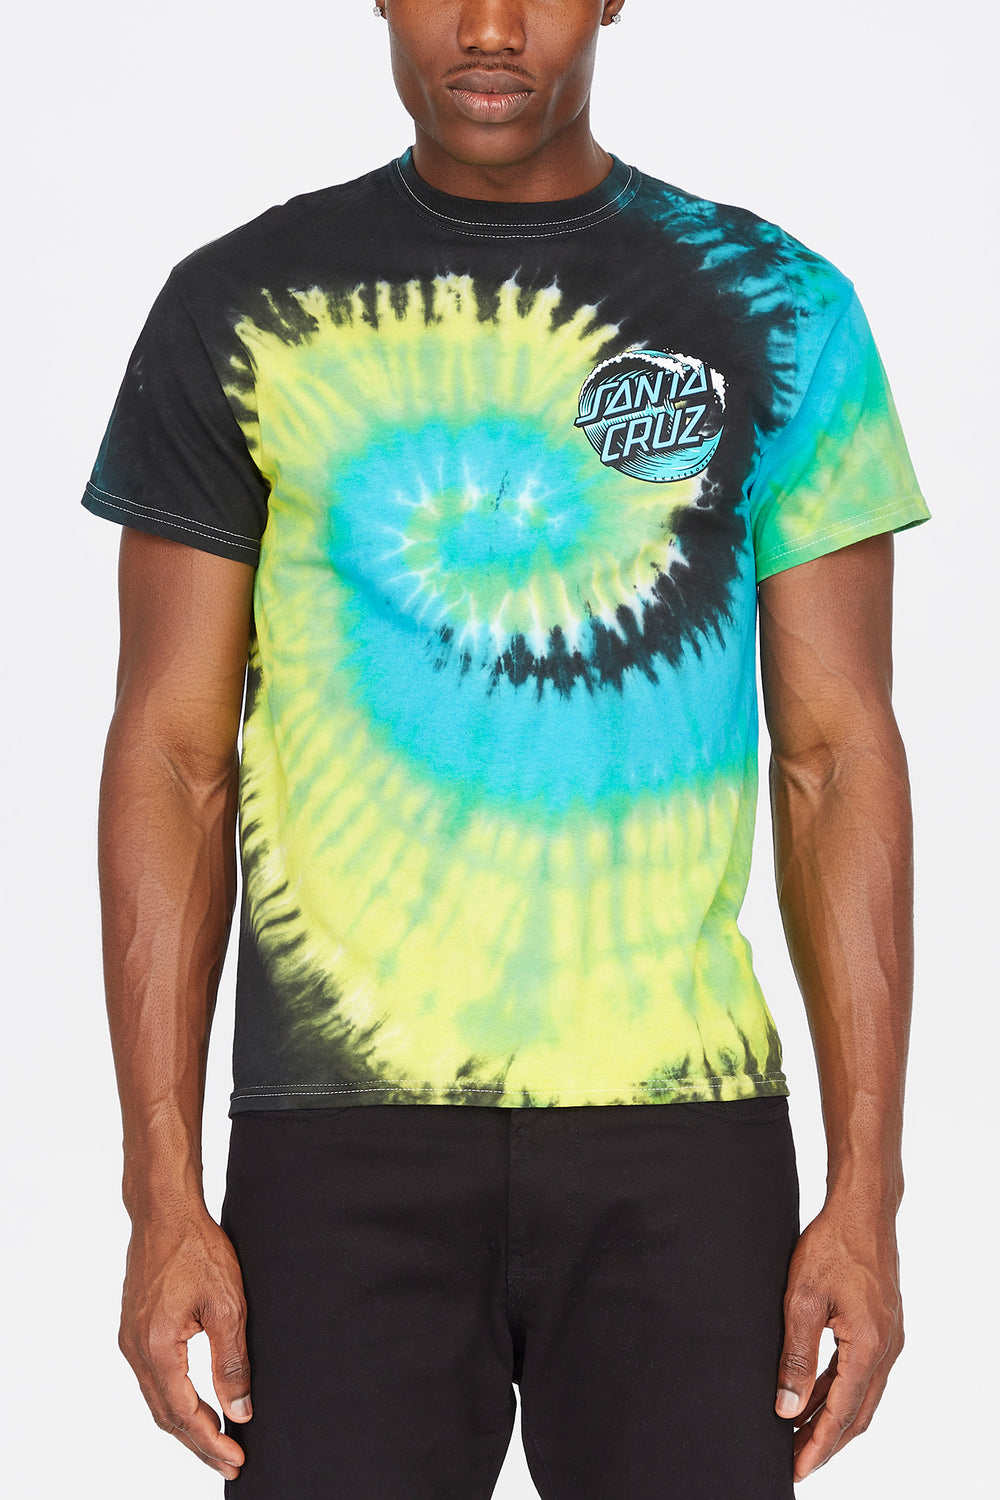 Santa Cruz Wave Dot Tie-Dye T-Shirt Multi